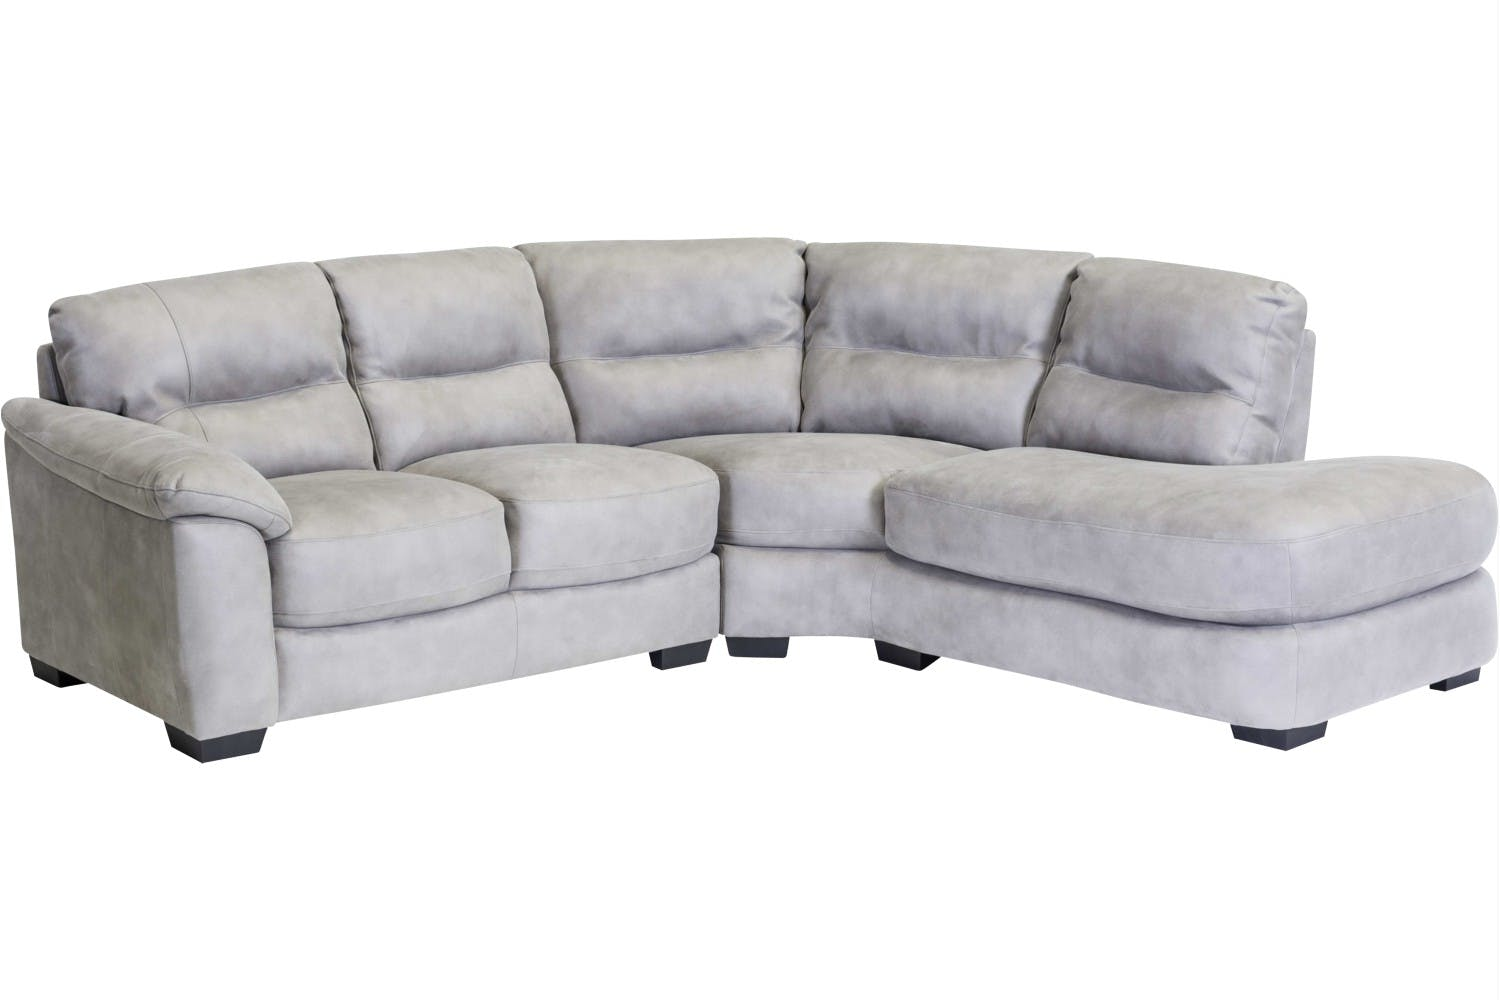 Becky 2 Seater Sofa With Chaise   Ireland